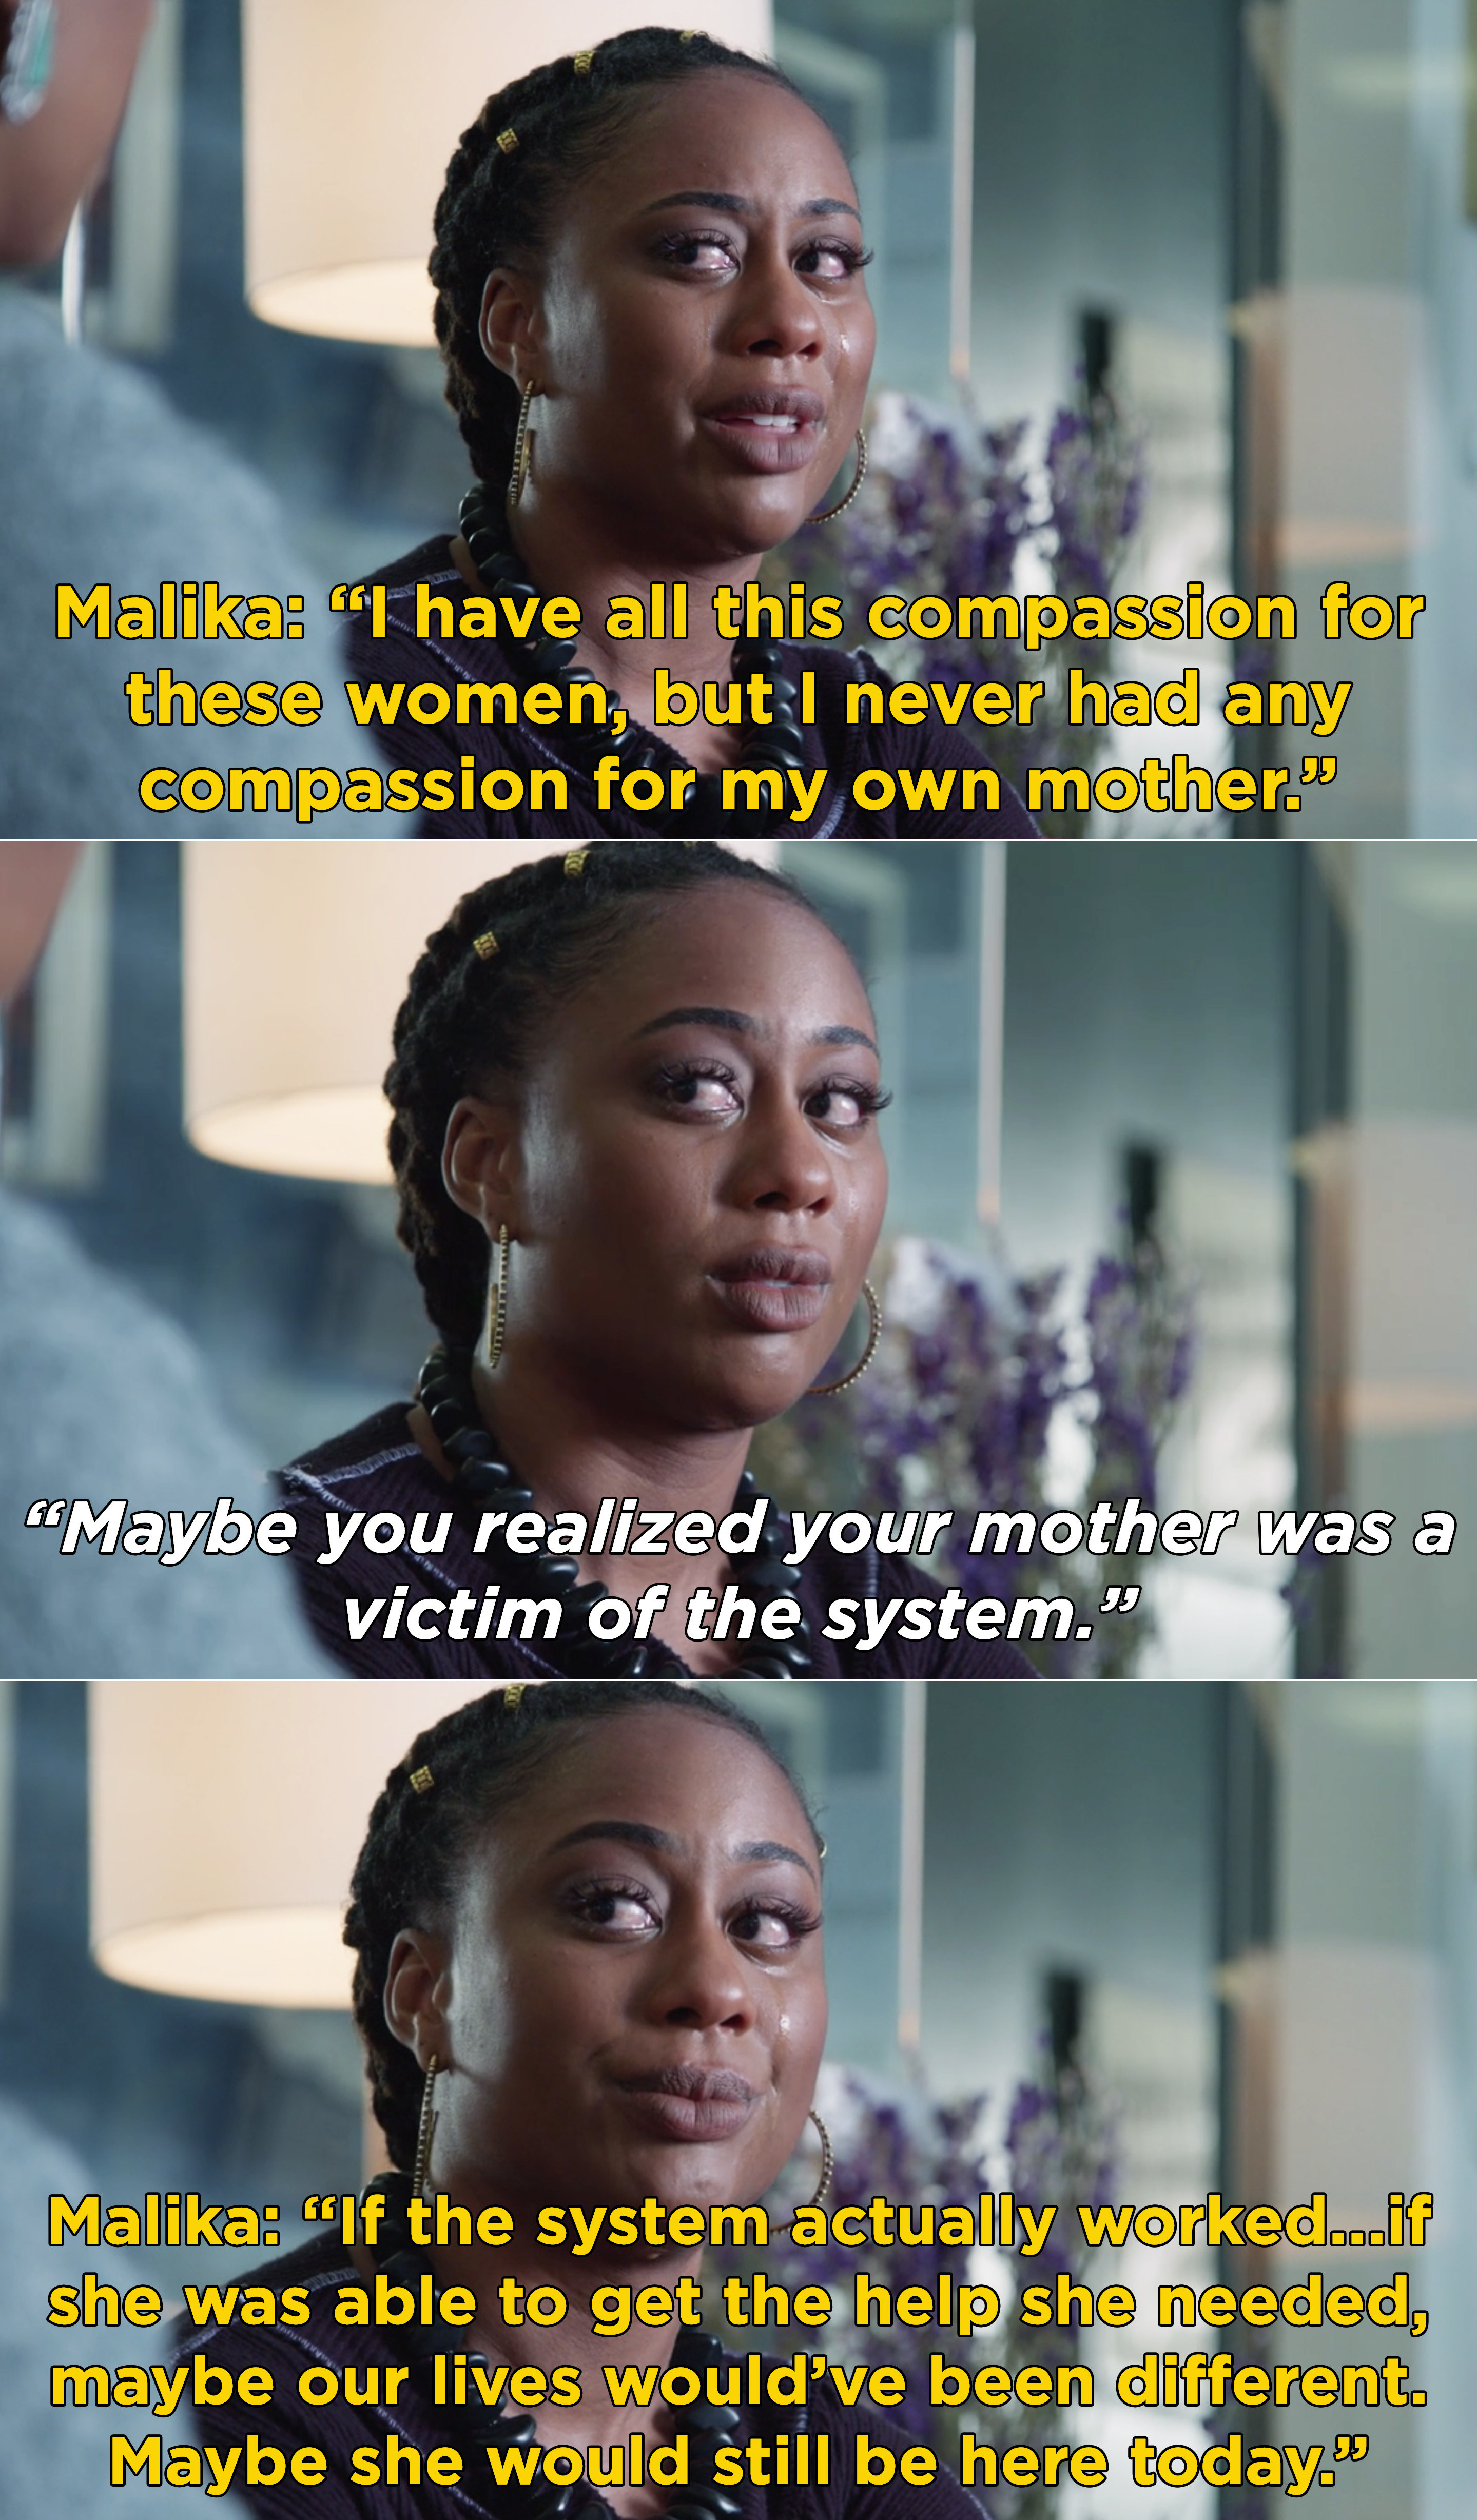 Malika crying and saying if the system actually worked her mom might've gotten the help she needed and would maybe still be alive